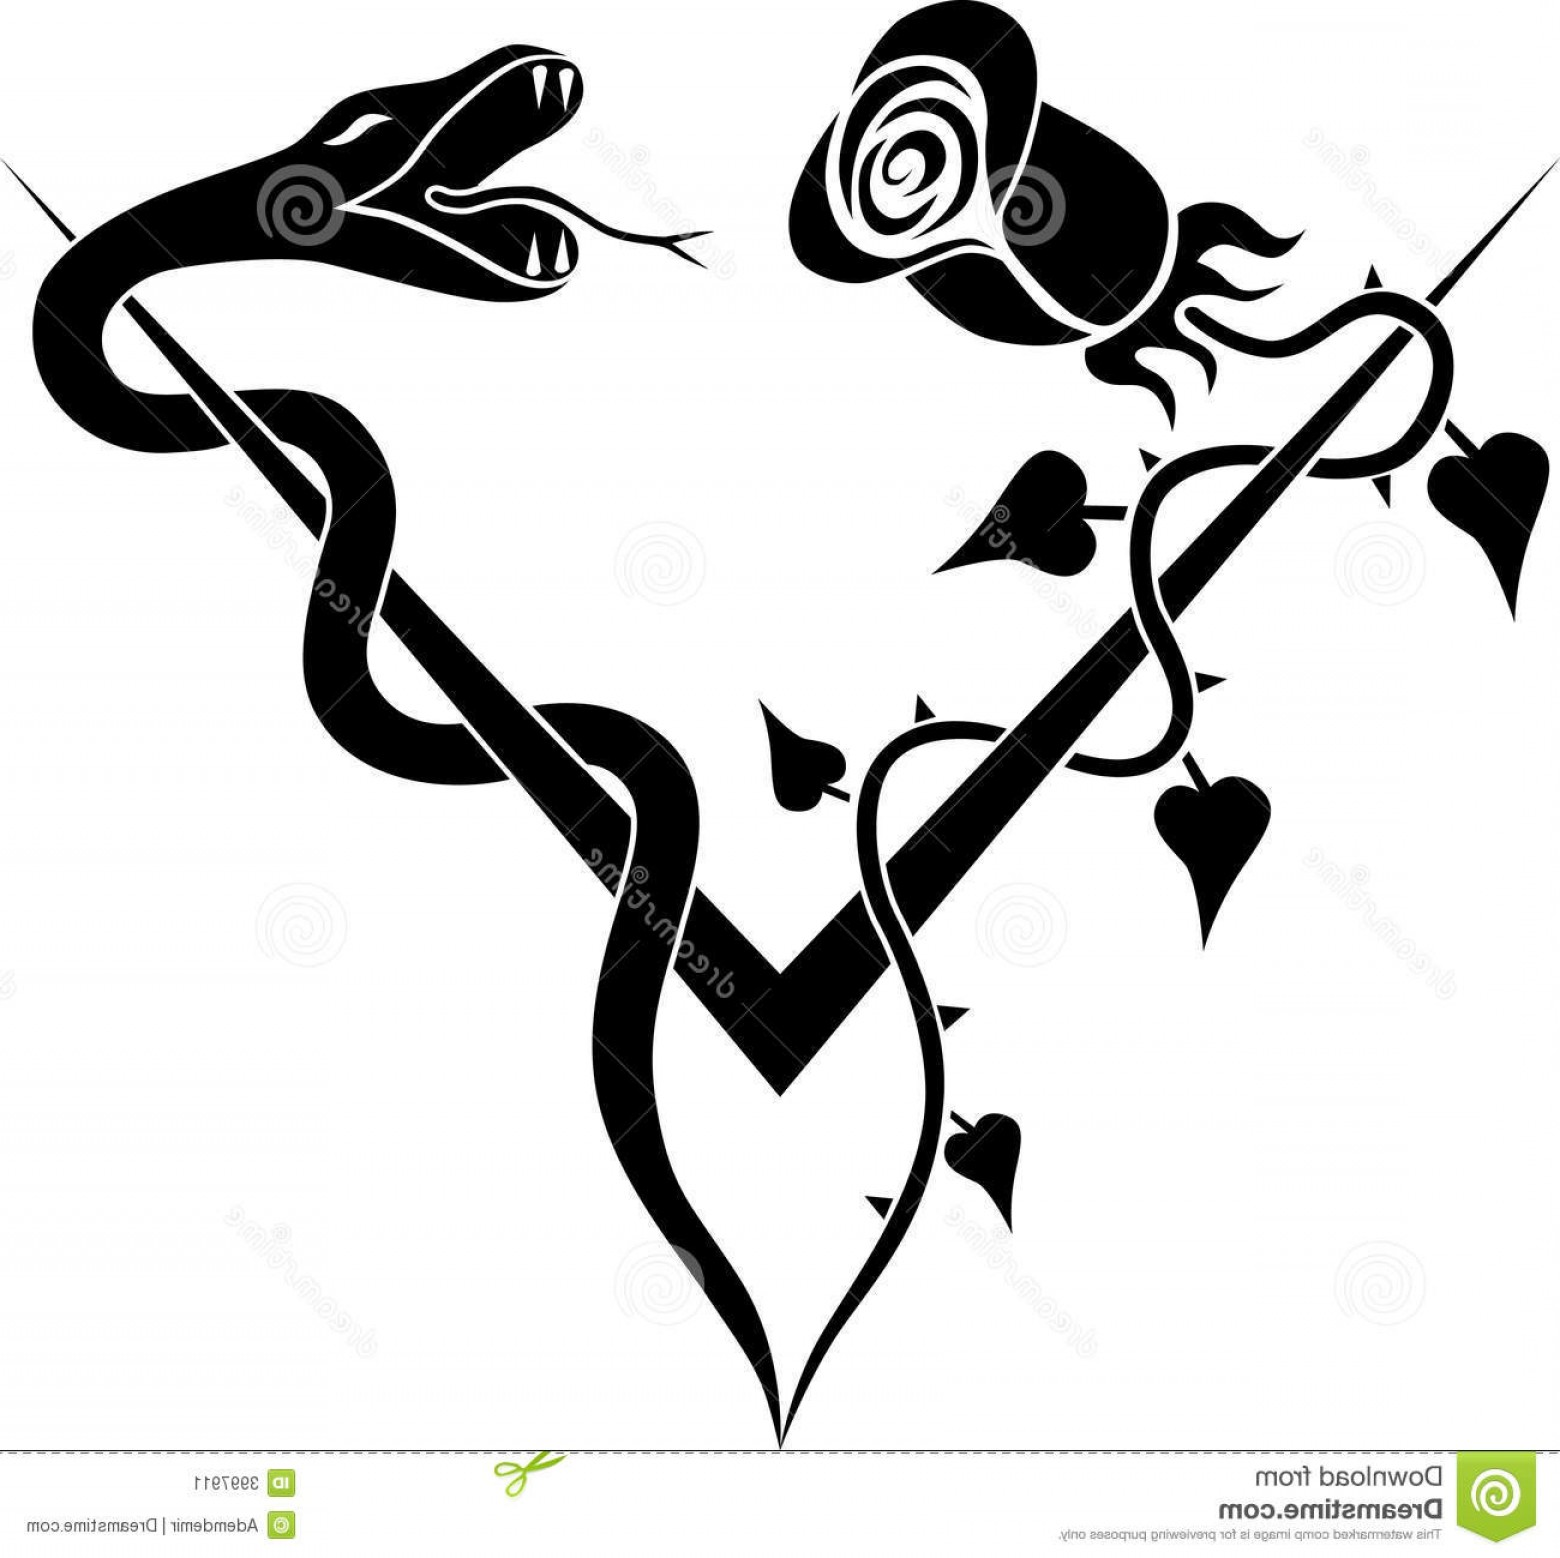 Snake coiled around a branch black and white clipart svg black and white download Stock Image V Rose Snake Tattoo Image | SOIDERGI svg black and white download